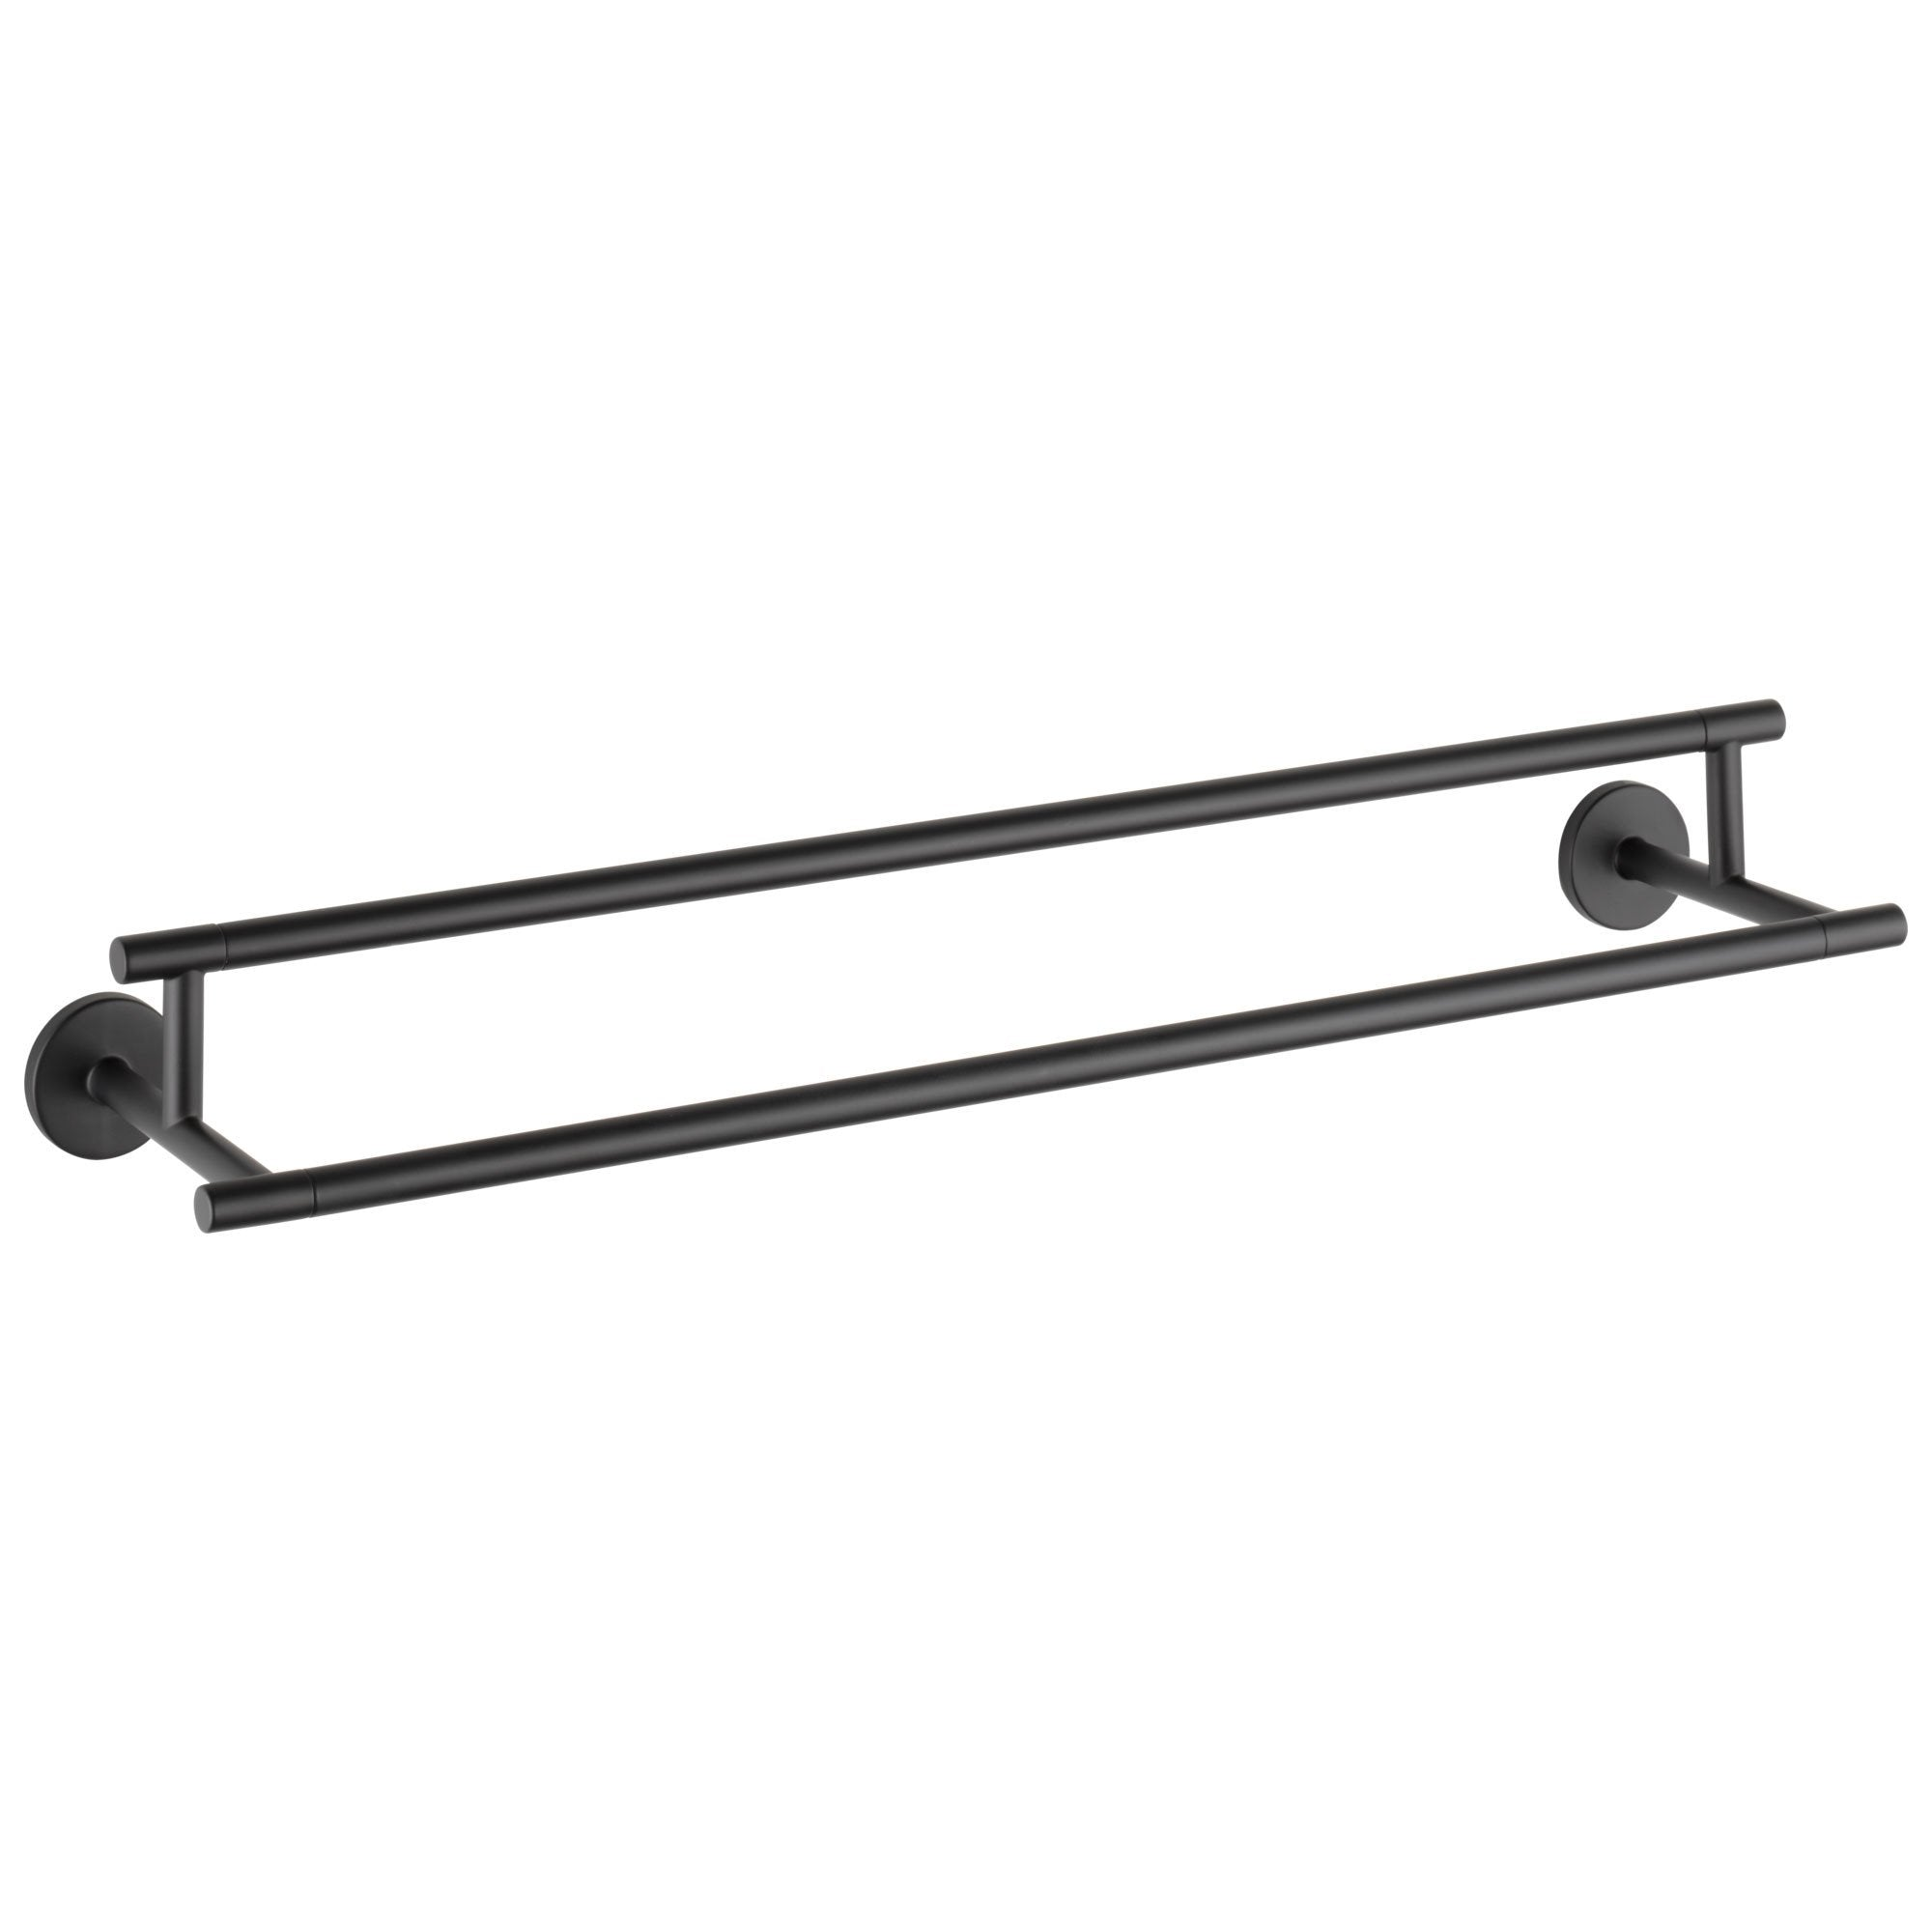 "Delta Trinsic Collection Matte Black Finish Modern 24"" Wall Mounted Double Towel Bar D75925BL"